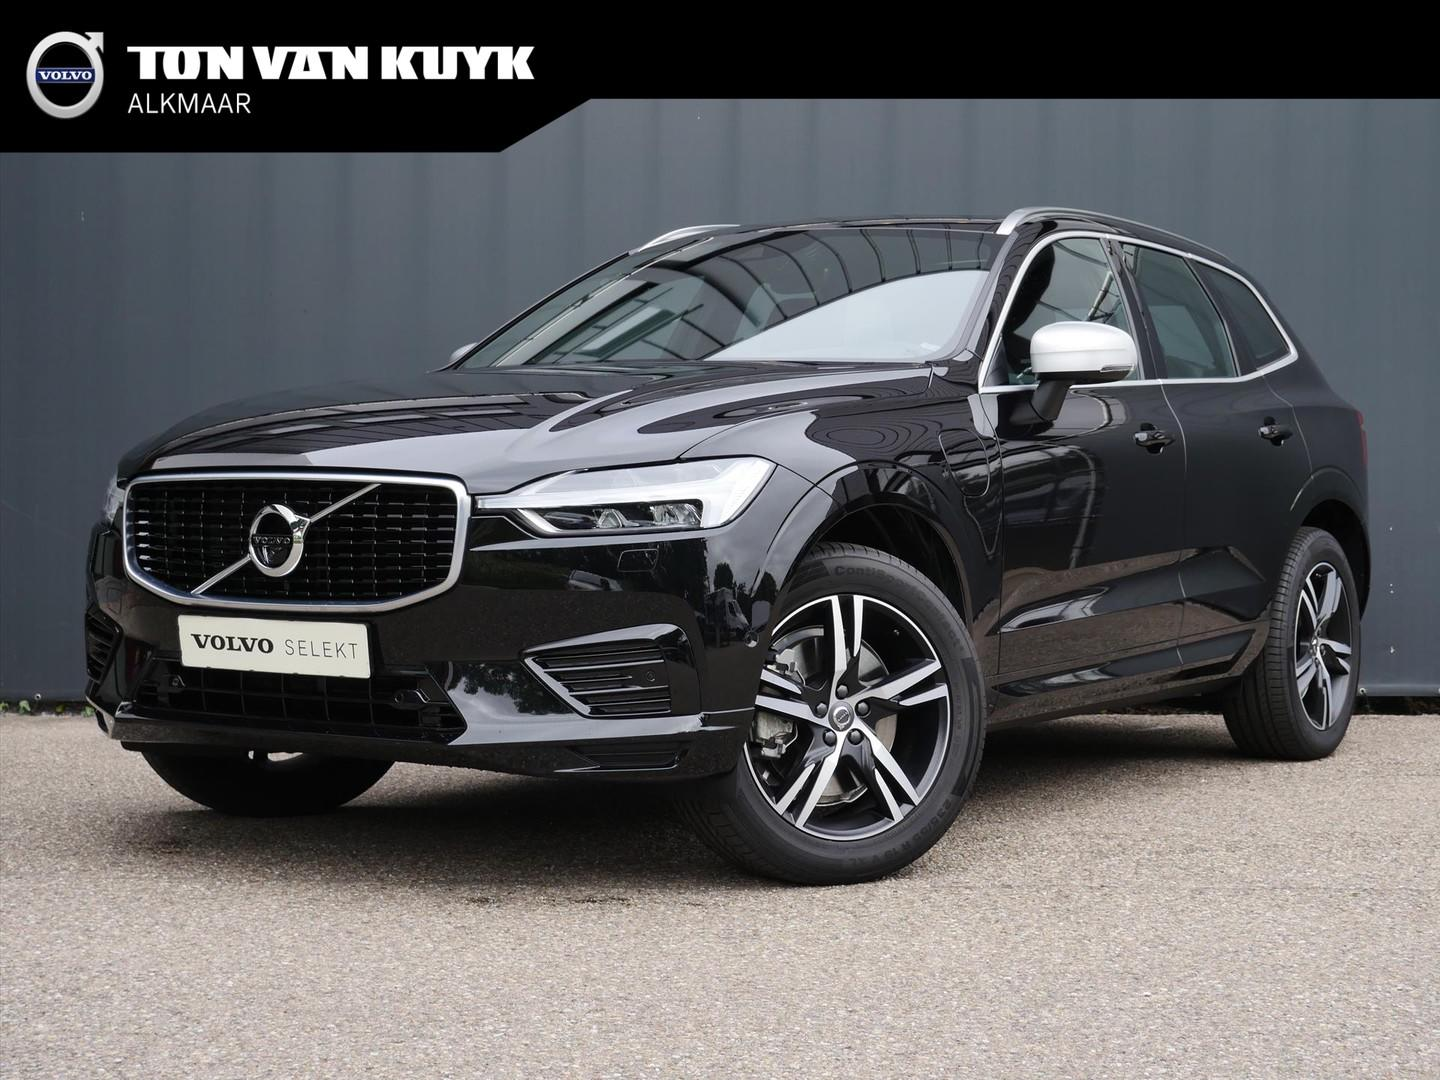 Volvo Xc60 T8 twin engine/ geartronic/ awd/ r-design/ stoelventilatie